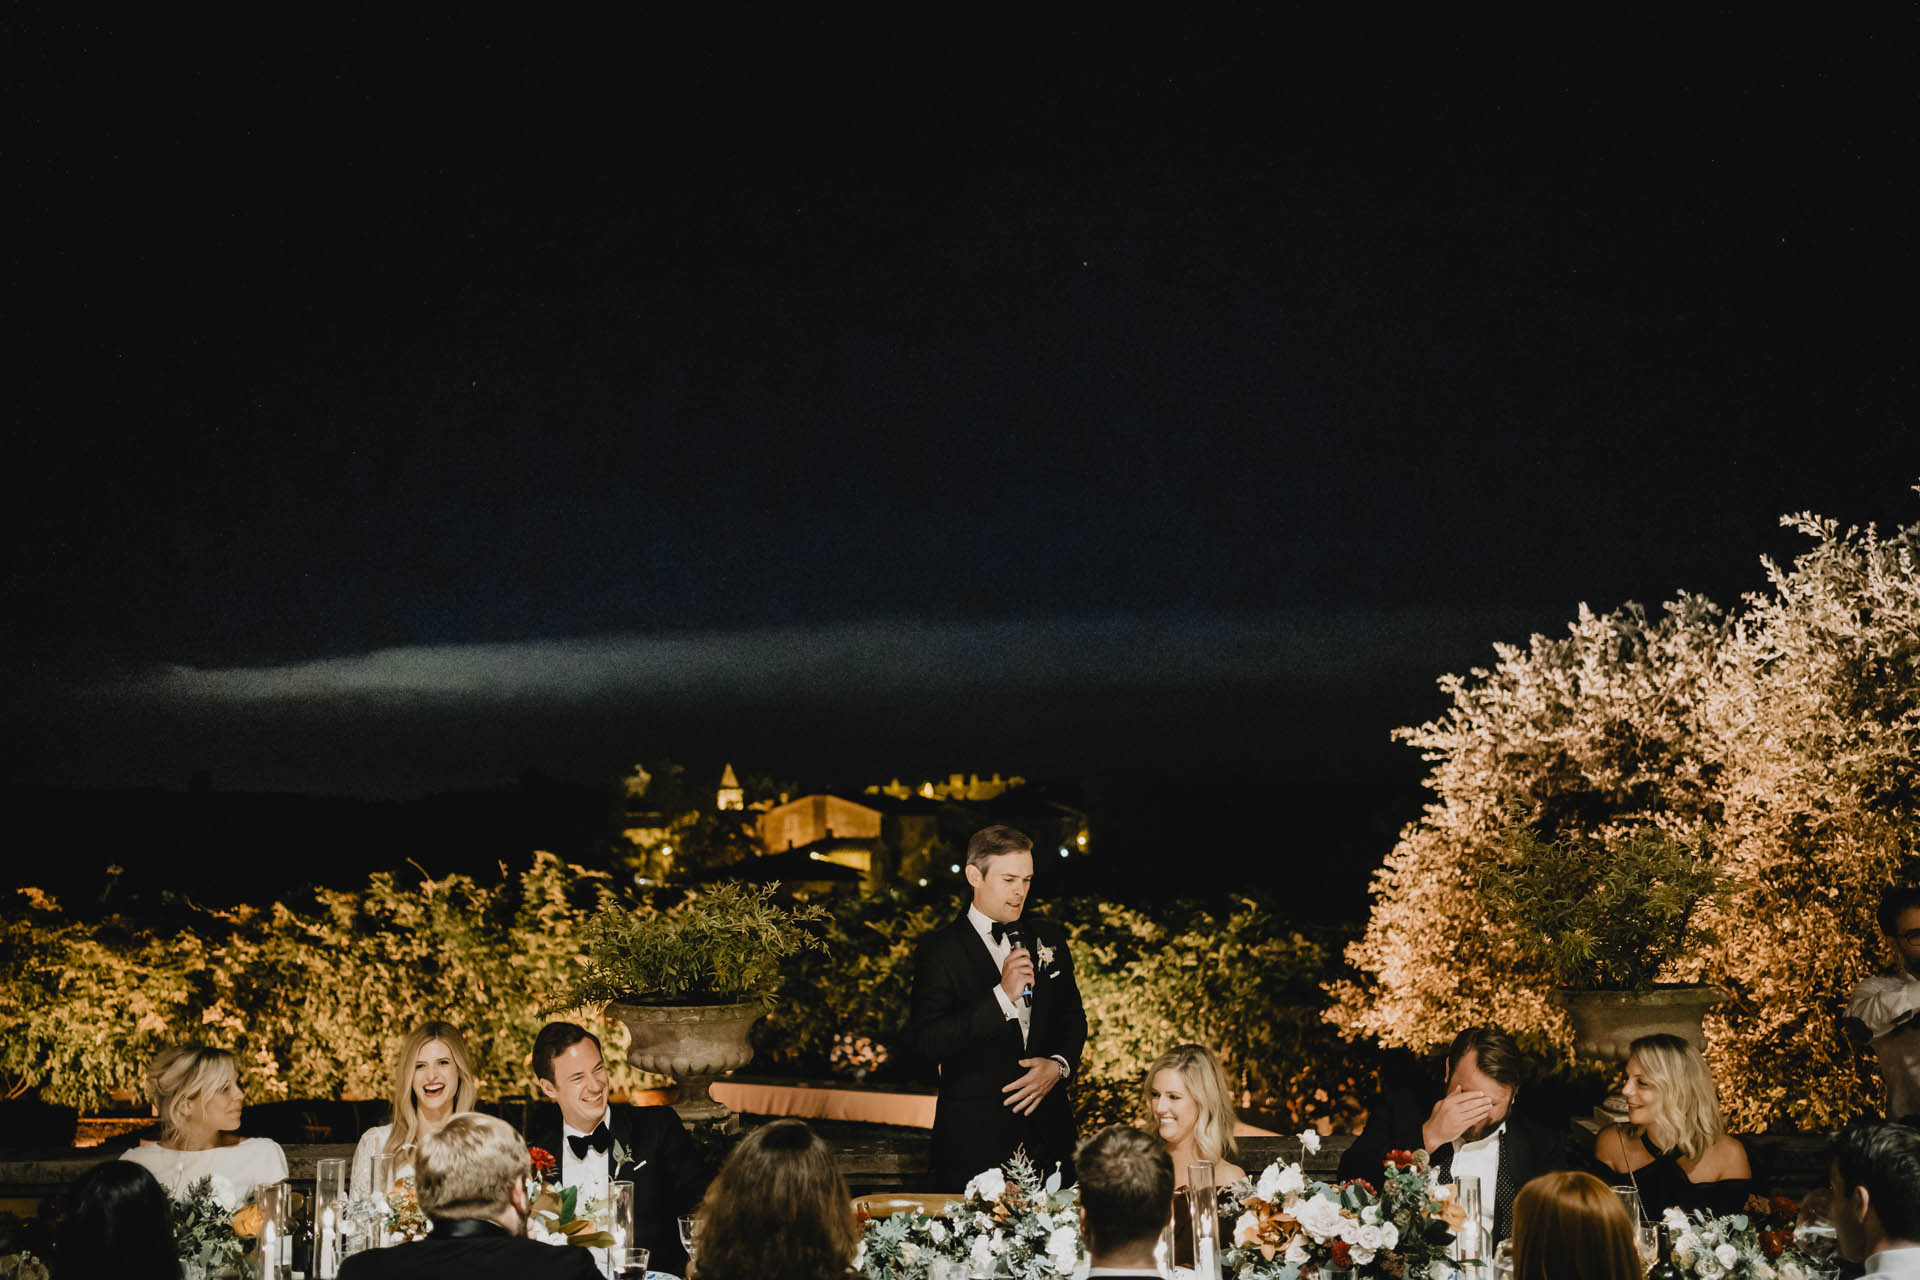 - 88 :: Intimate elegance: an intimate wedding at Il Borro :: Luxury wedding photography - 87 ::  - 88